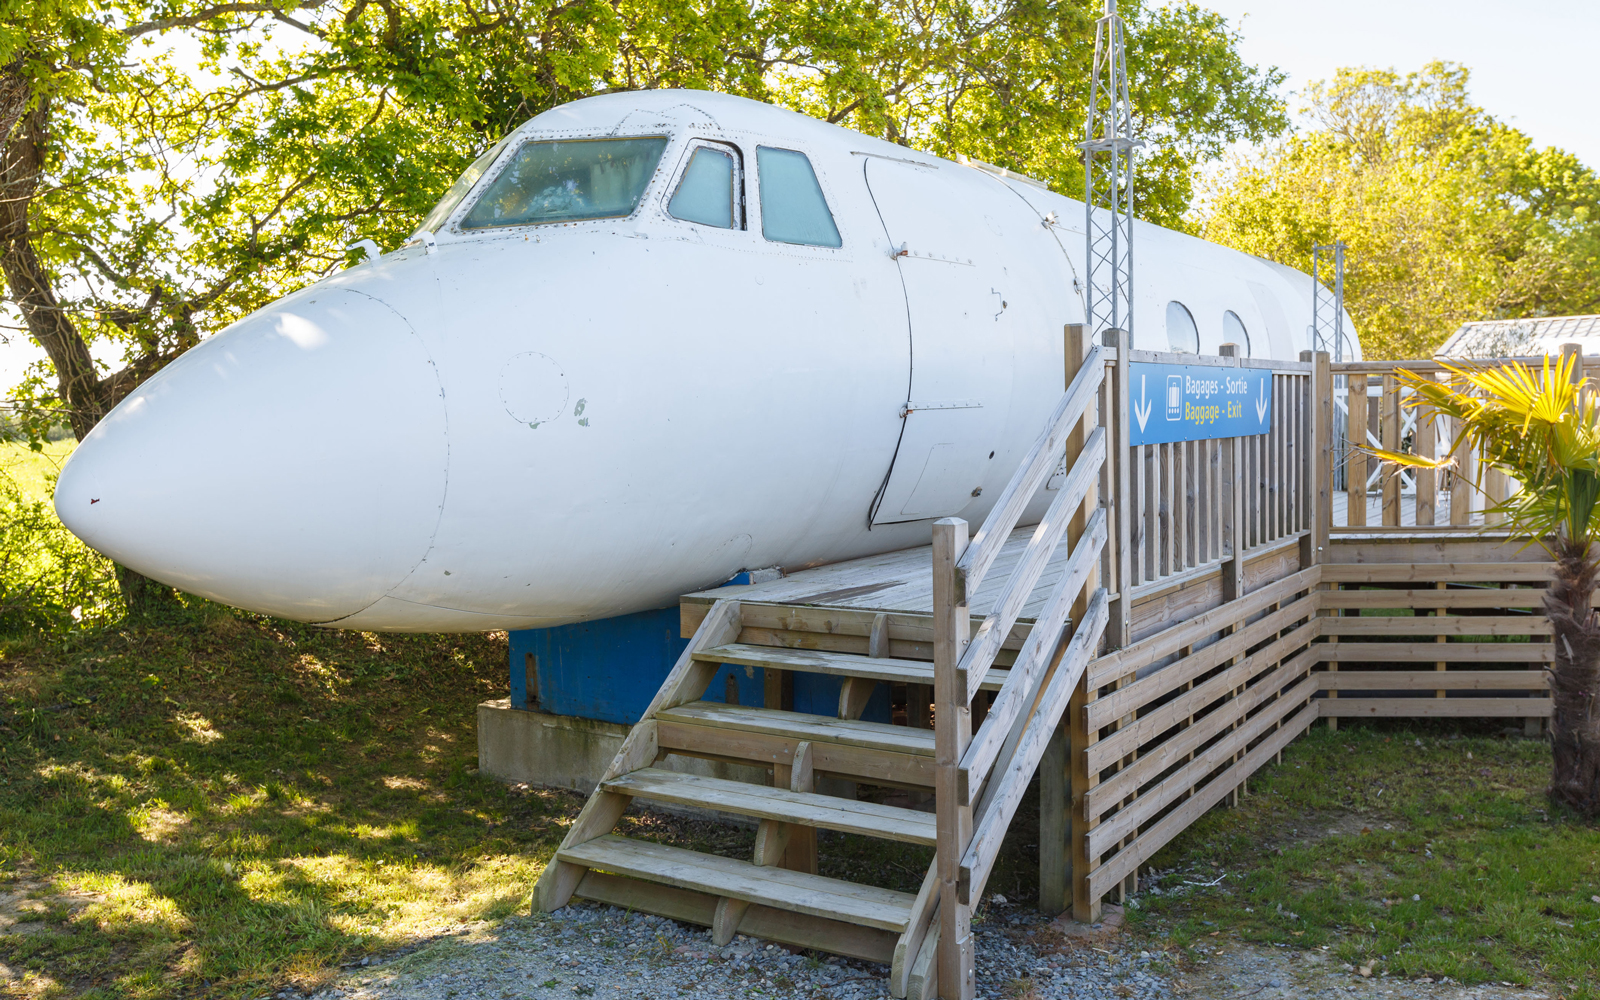 This Airplane in France Is Actually an Airbnb — and the Cockpit Is the Bathroom